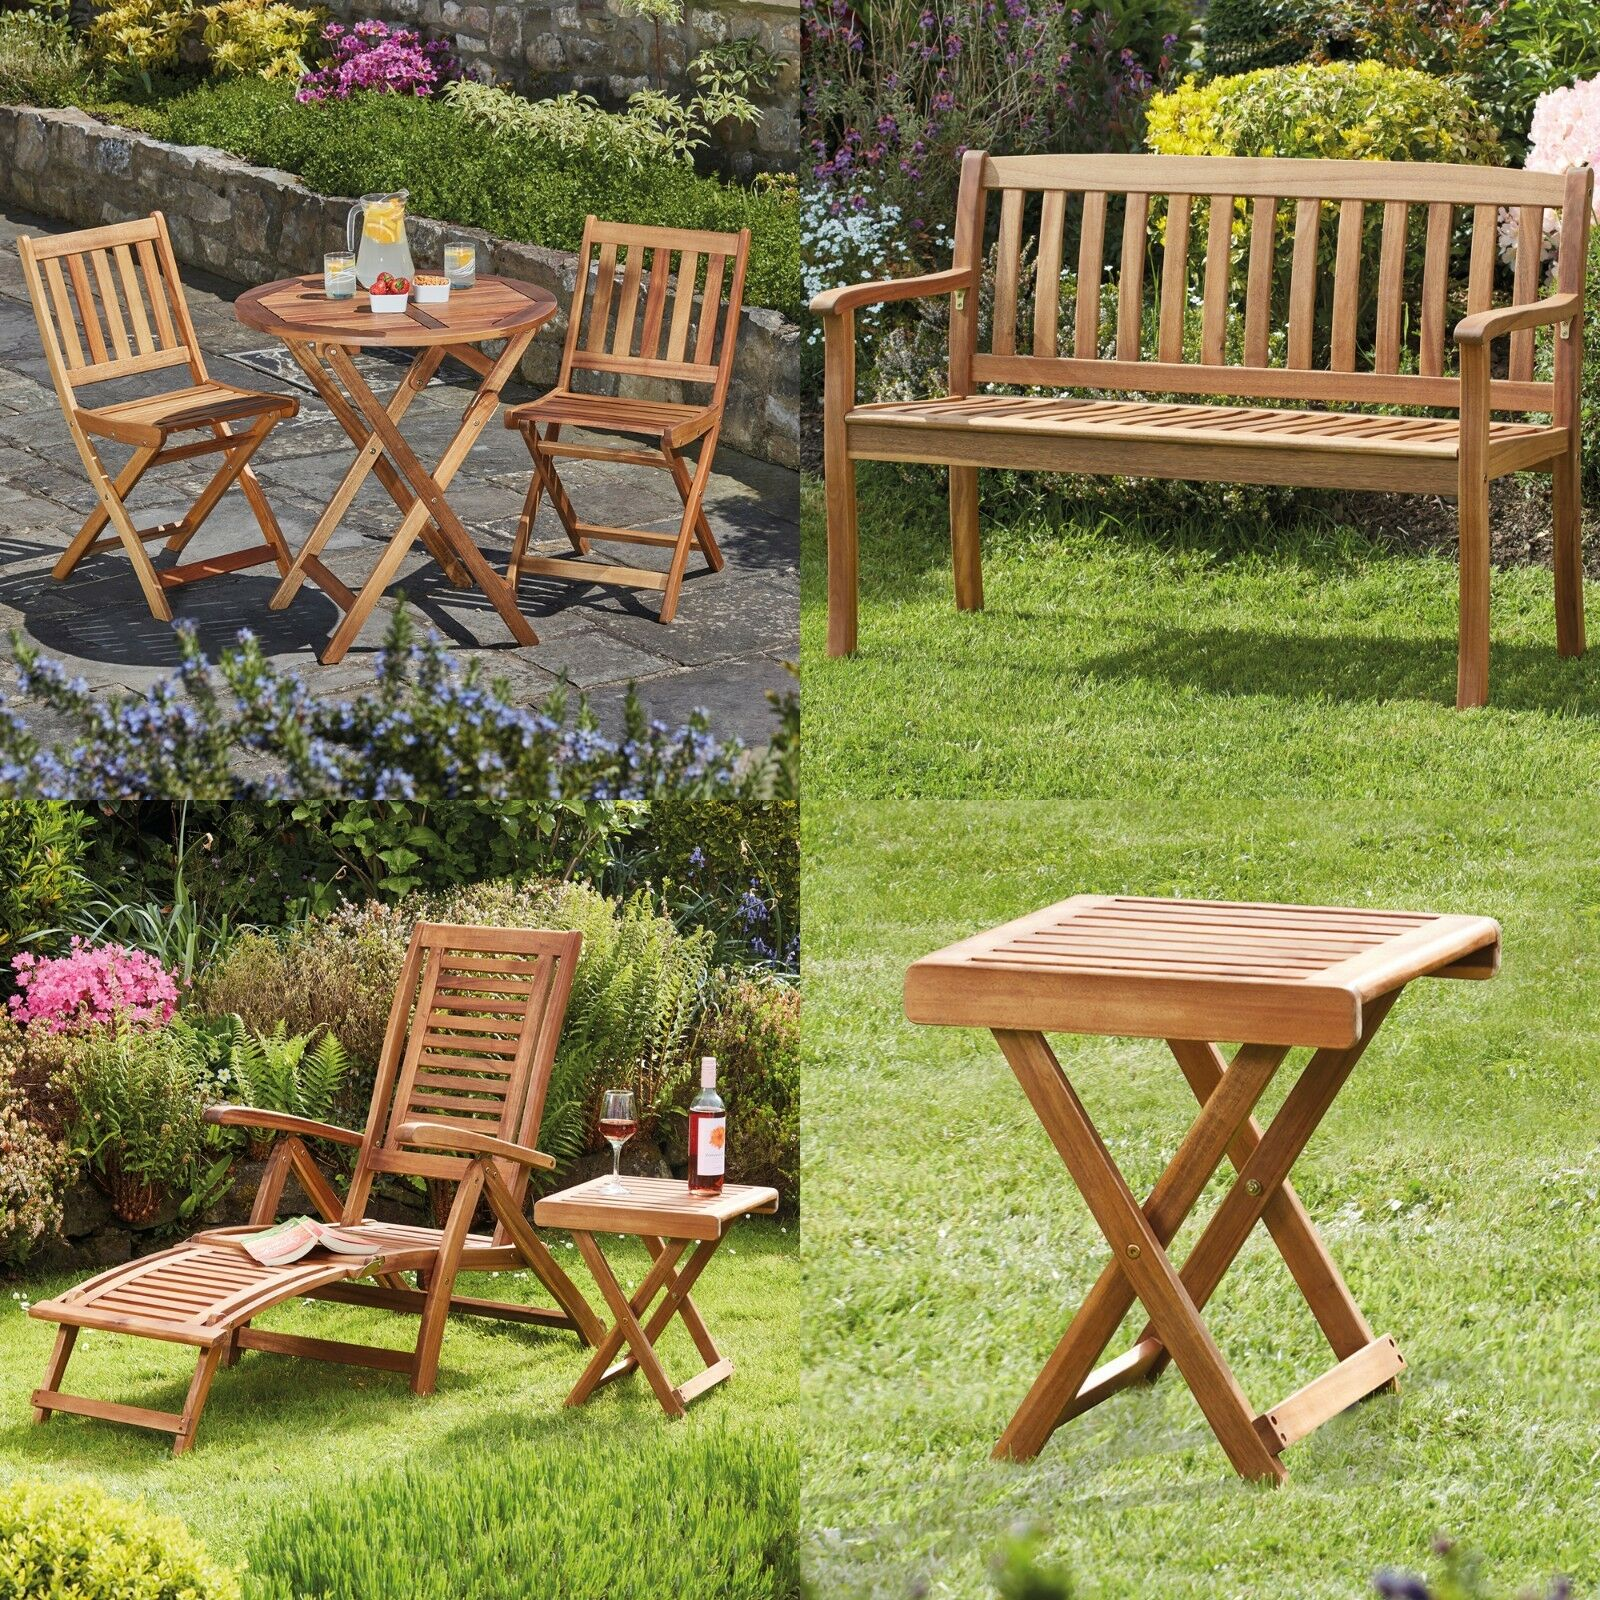 Garden Furniture - Garden Life Furniture Bistro Set, Bench, Sun Lounger Deck Chair & Foldable Table